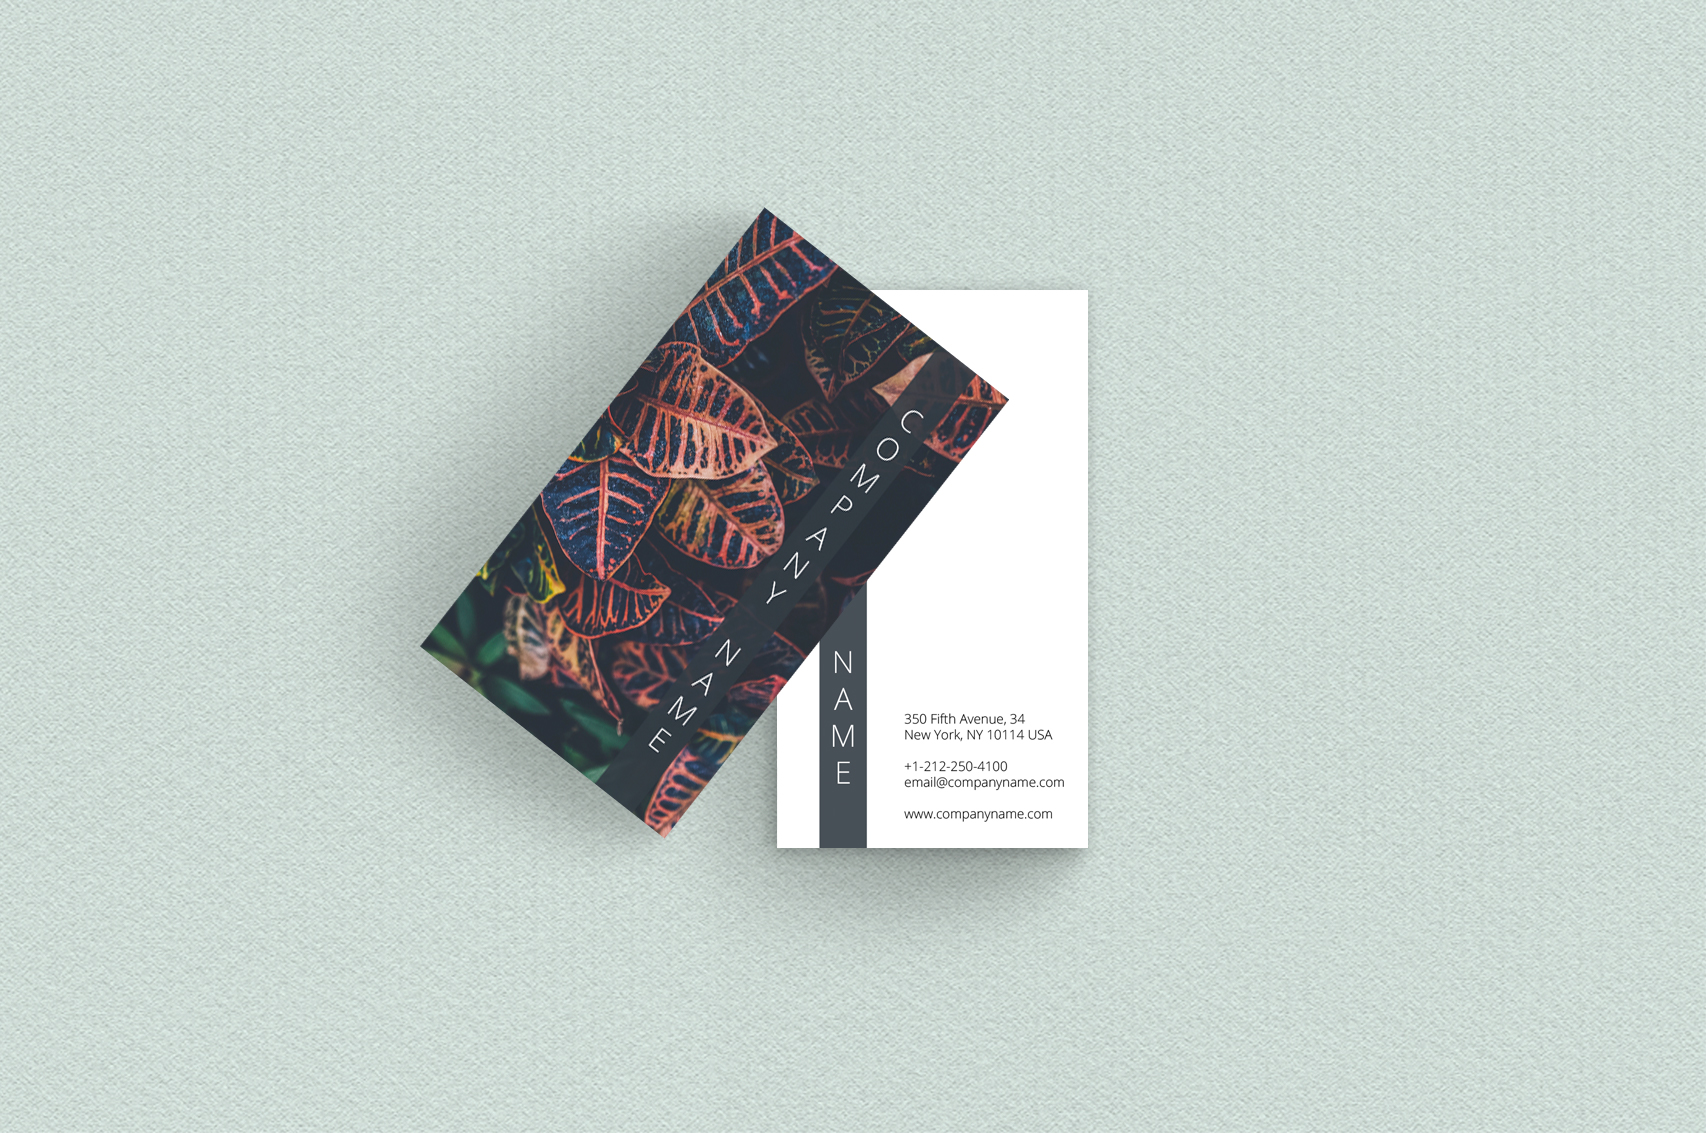 Asian Dream Business Card Template 2 example image 3